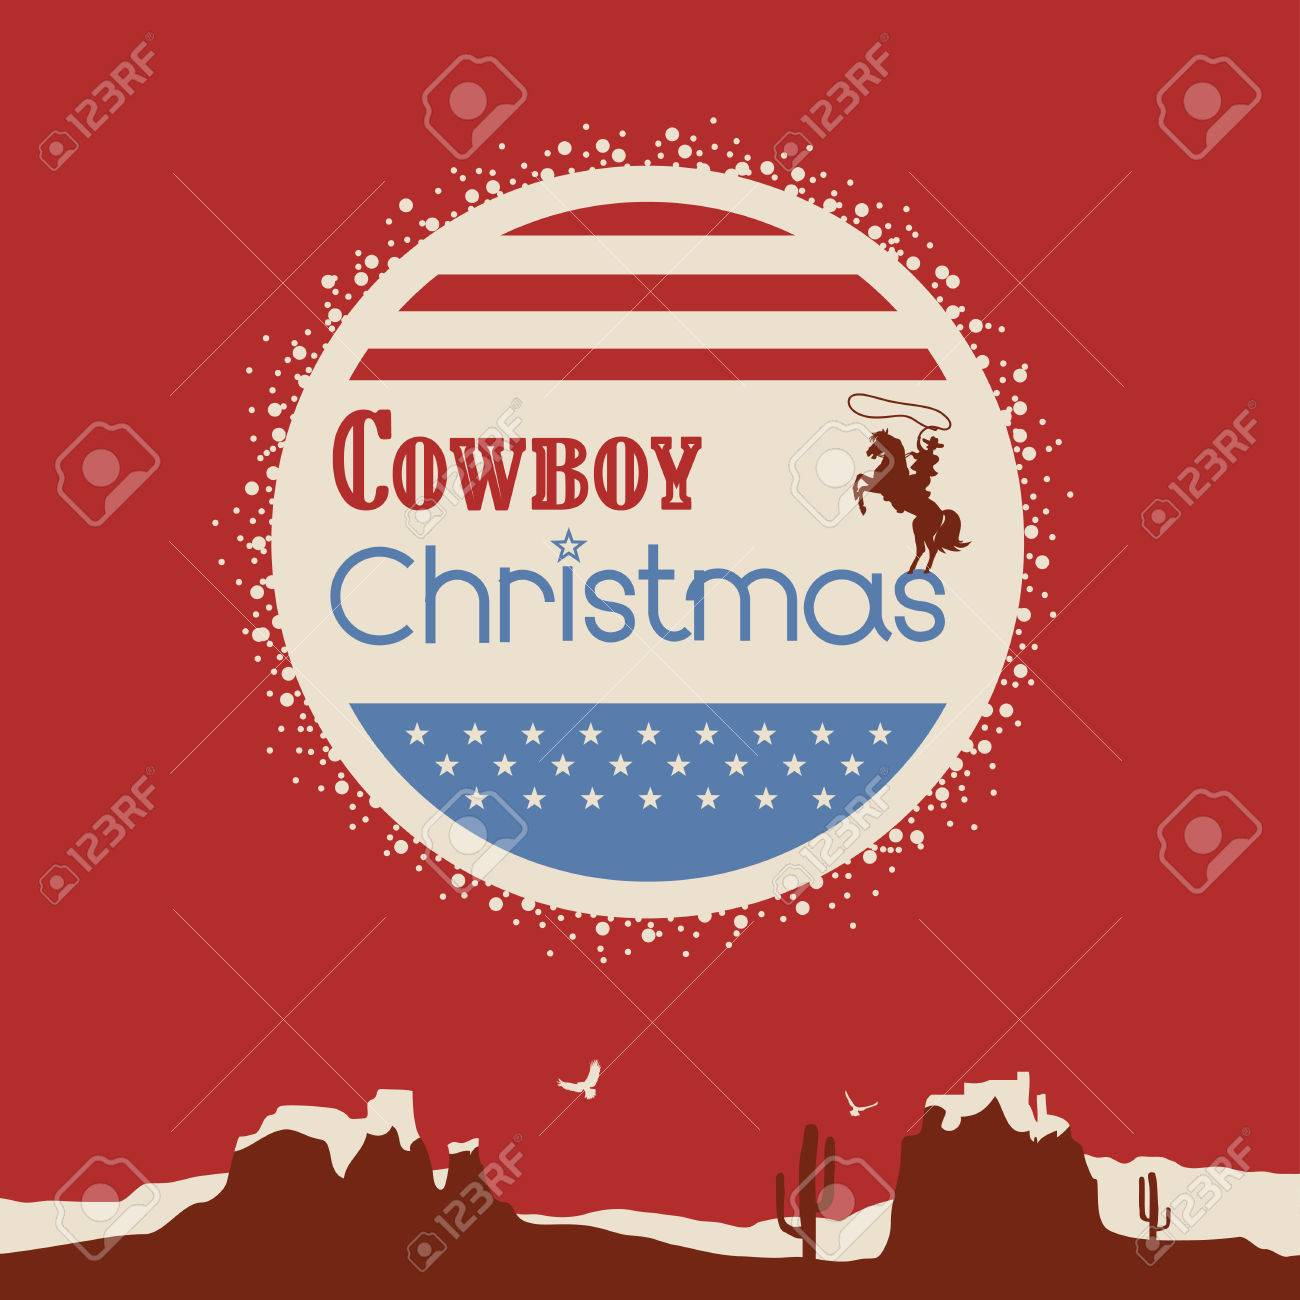 Patriotic Christmas Background.Poster Of Cowboy Christmas Background With Patriotic Elements